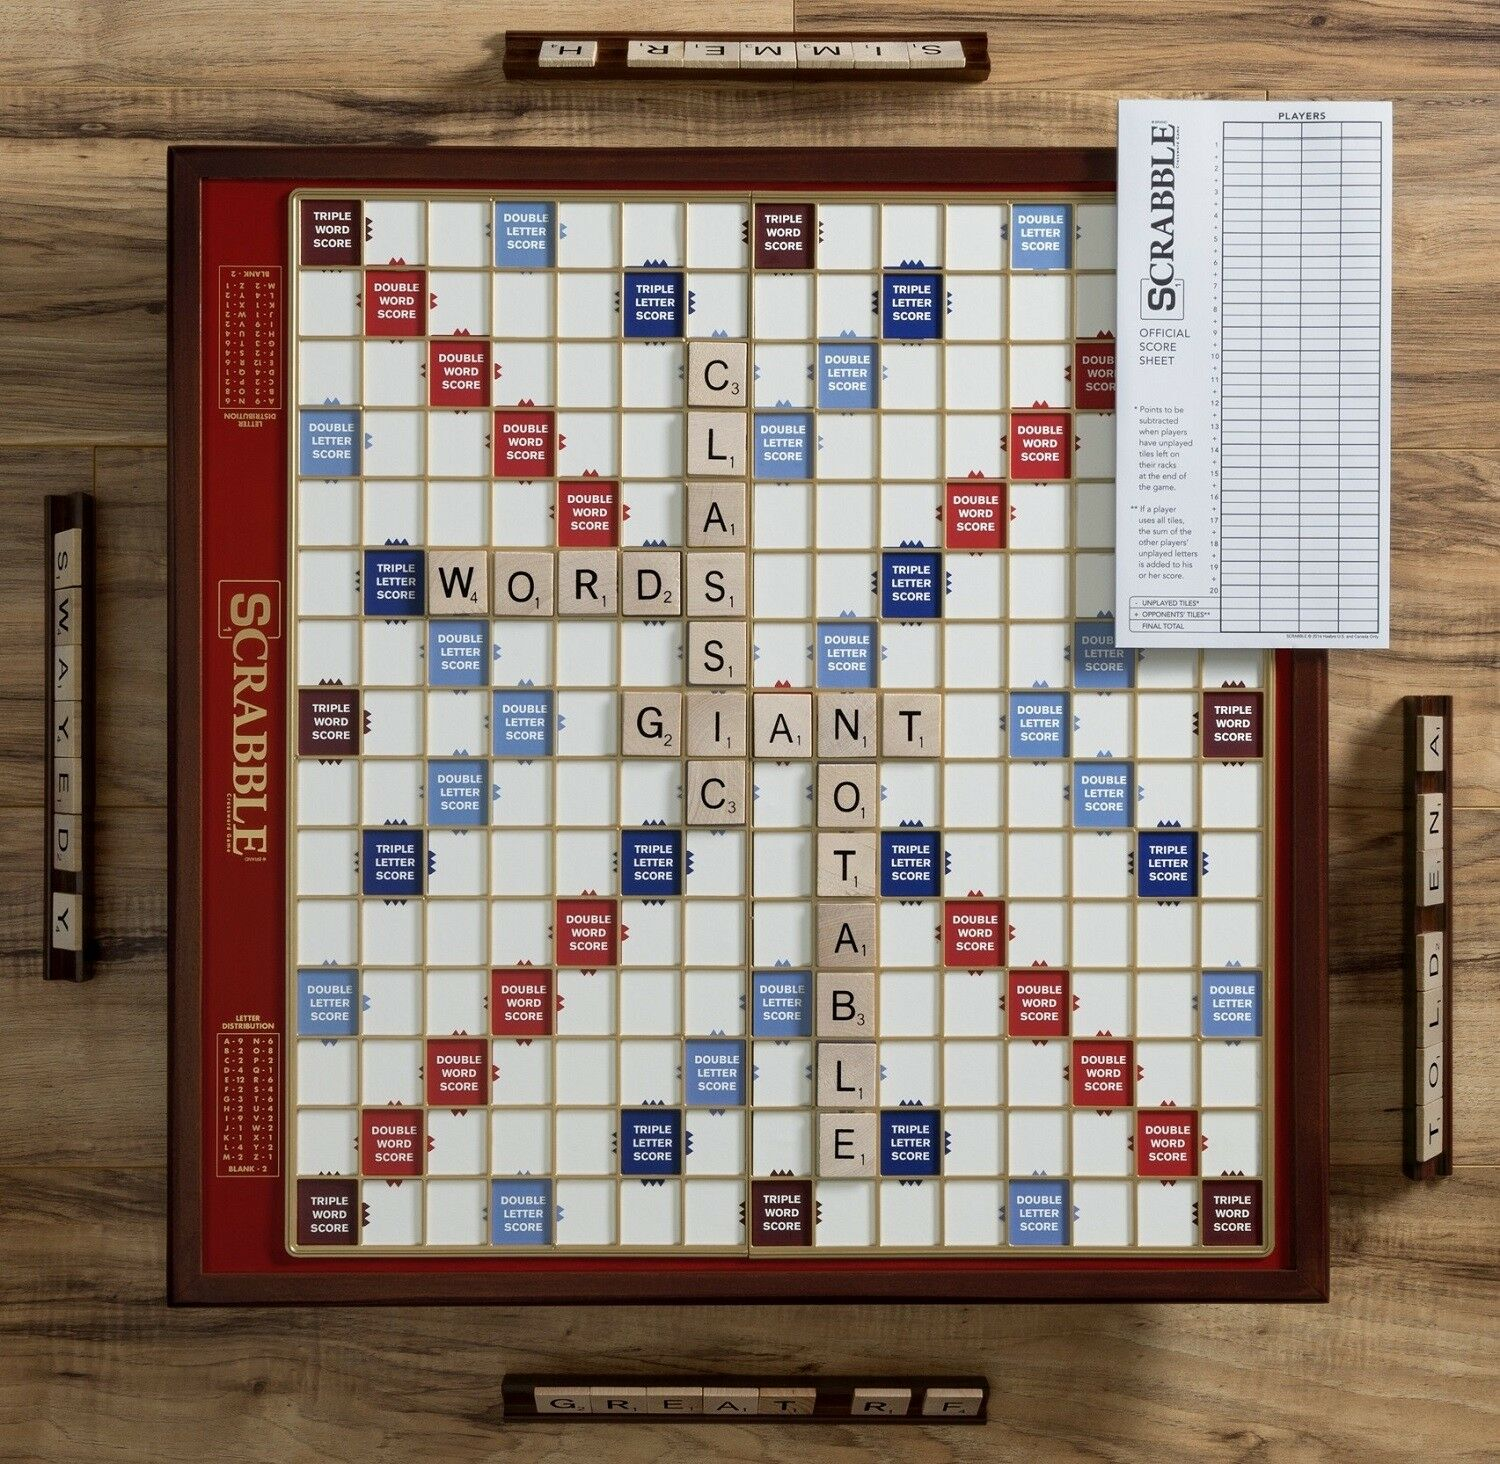 Winning Solutions Scrabble Giant Deluxe Edition Wooden Board Game NEW NEW NEW 6f05c5